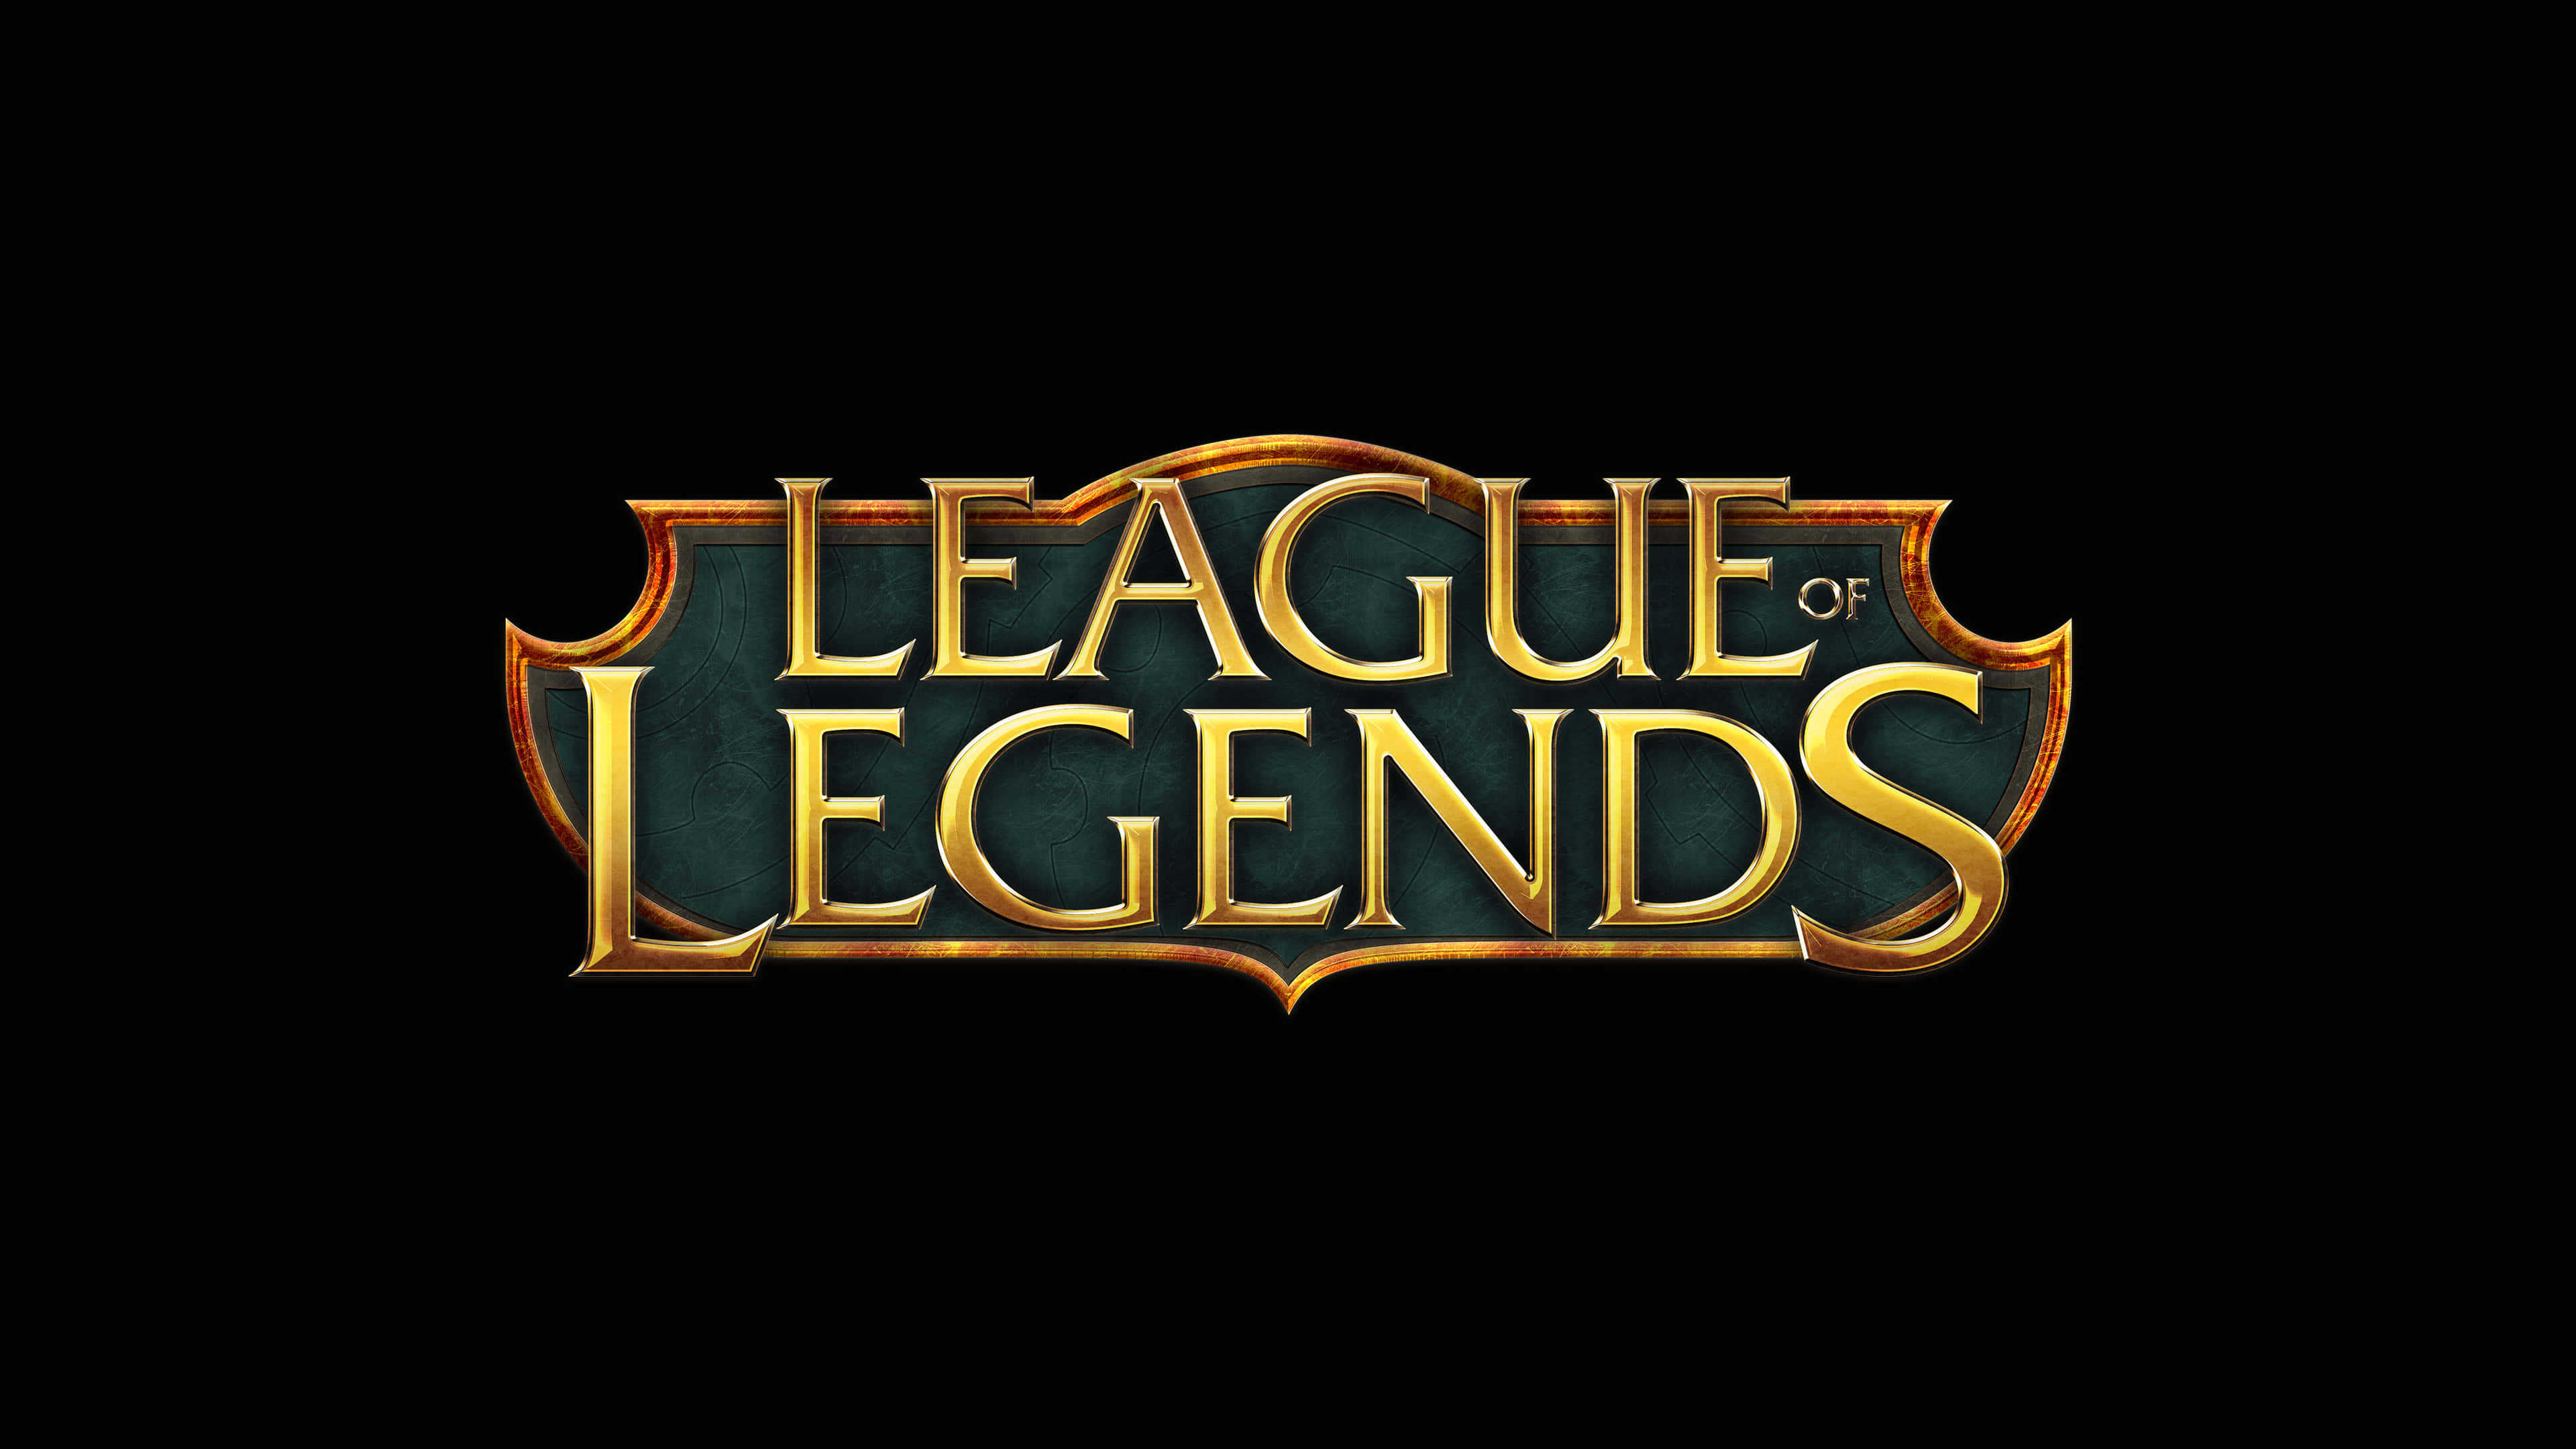 League Of Legends Logo Wallpapers Top Free League Of Legends Logo Backgrounds Wallpaperaccess